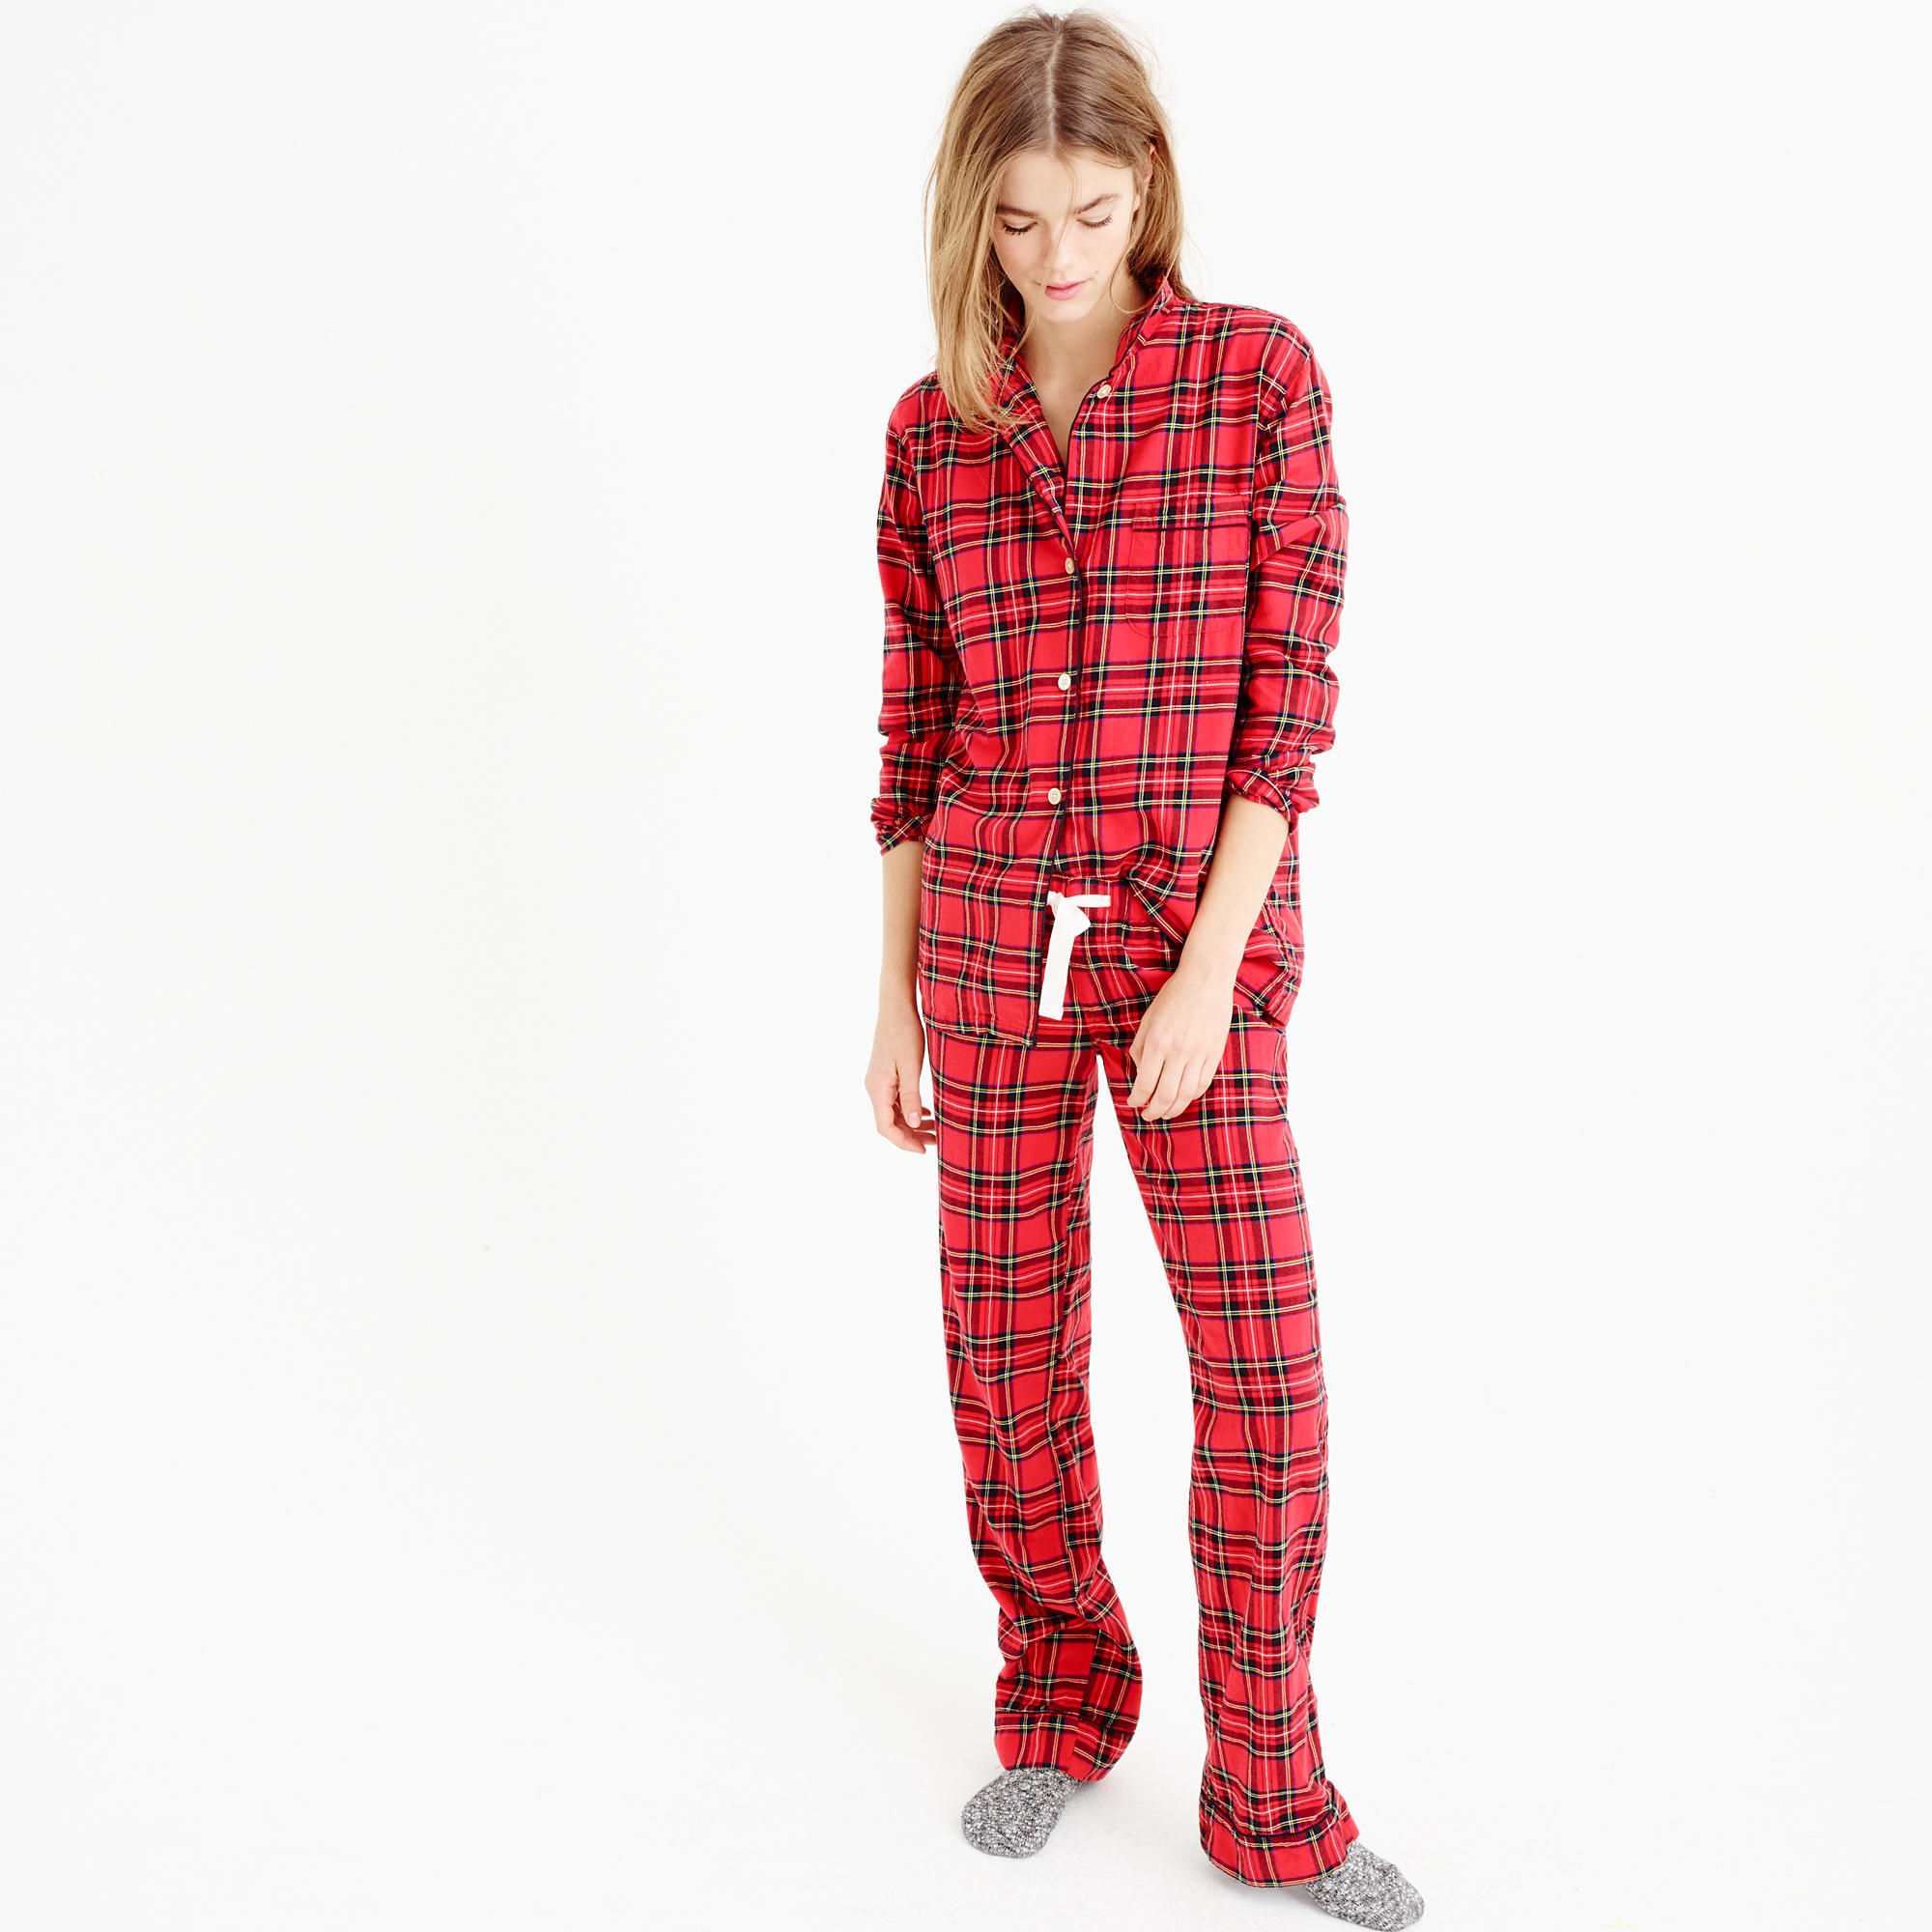 J.crew Classic Tartan Flannel Pajama Set in Red | Lyst